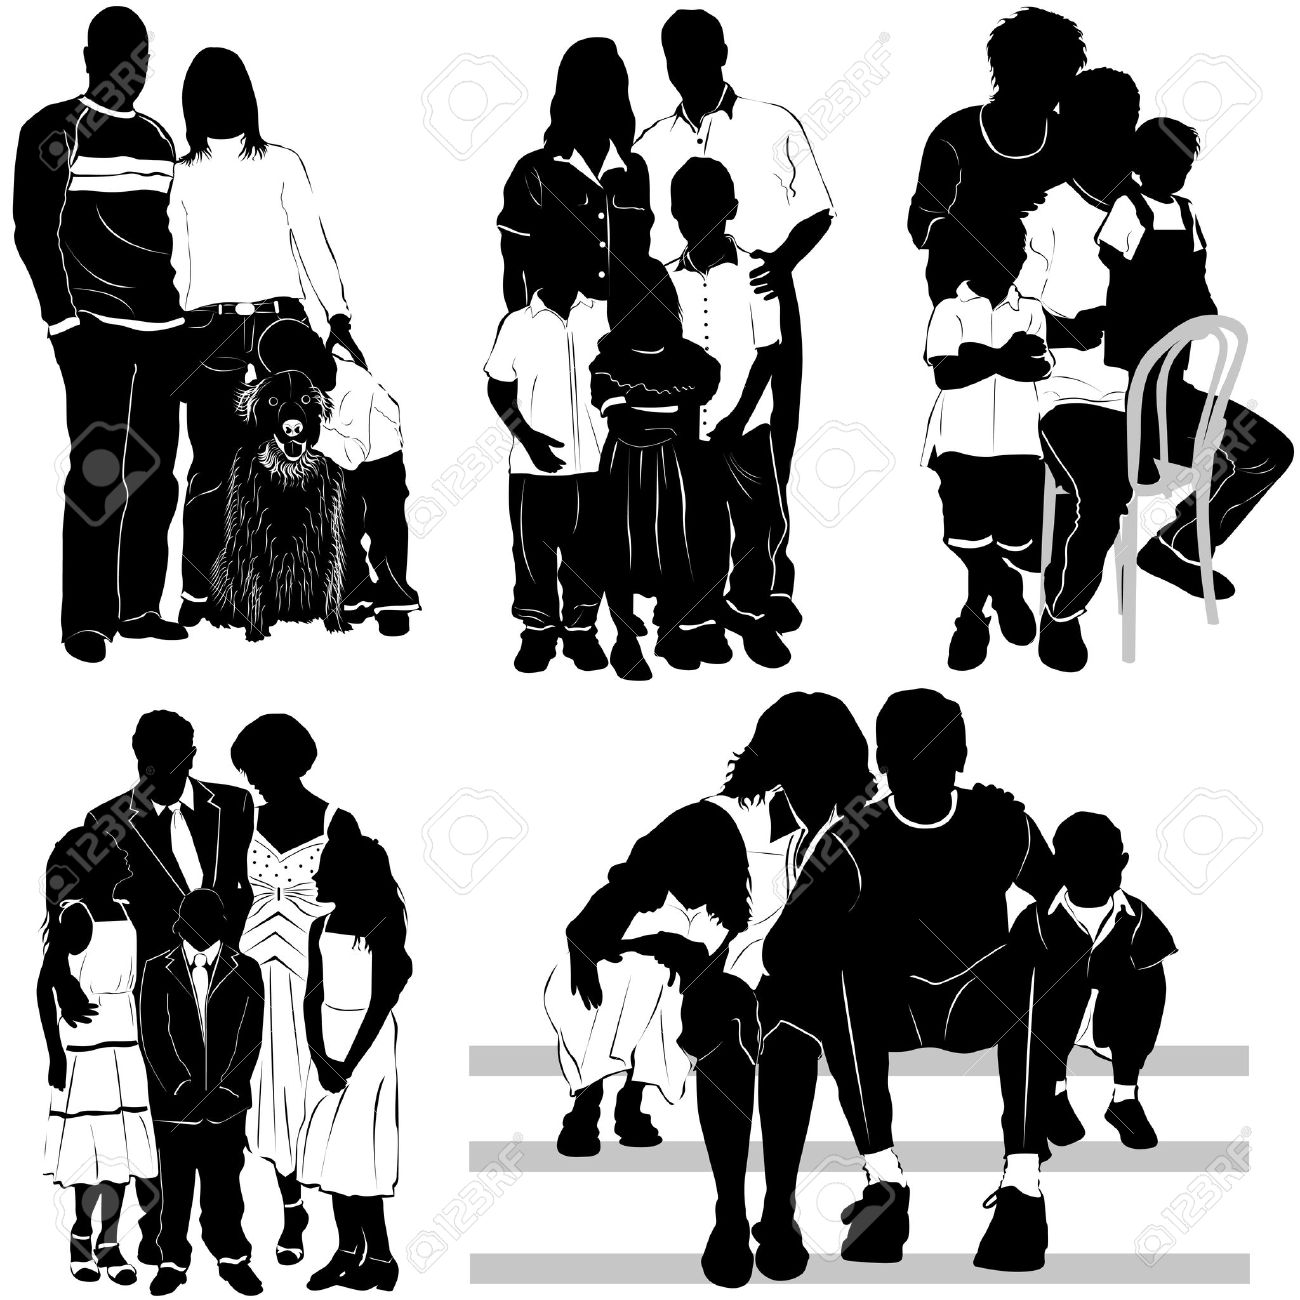 African Family Silhouette.